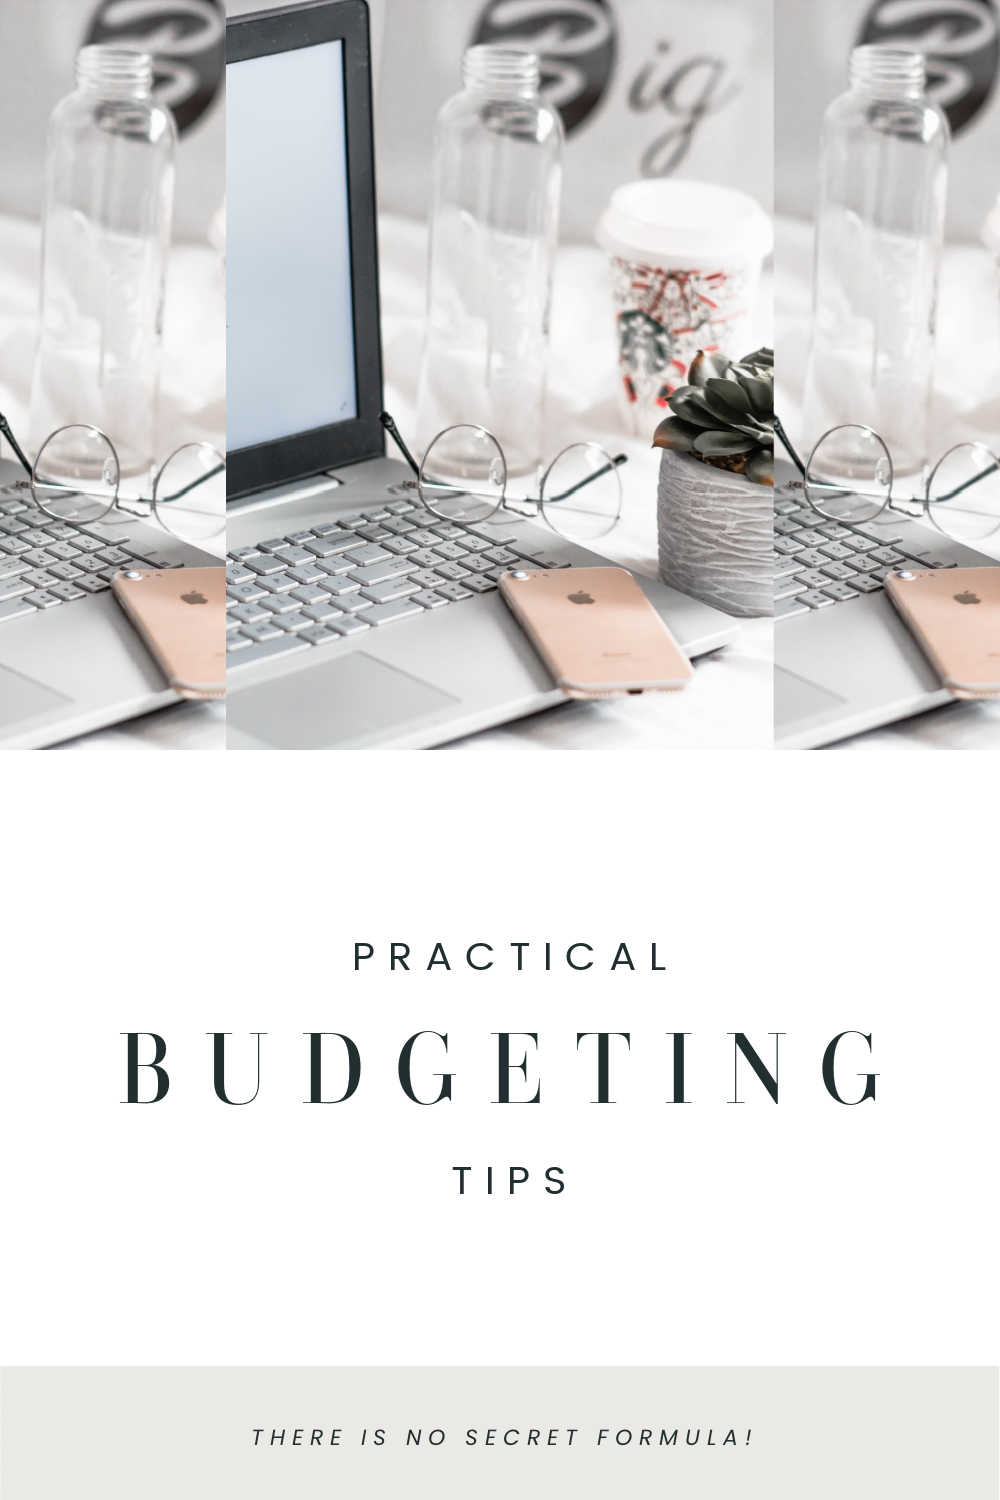 PRACTICAL BUDGETING TIPS